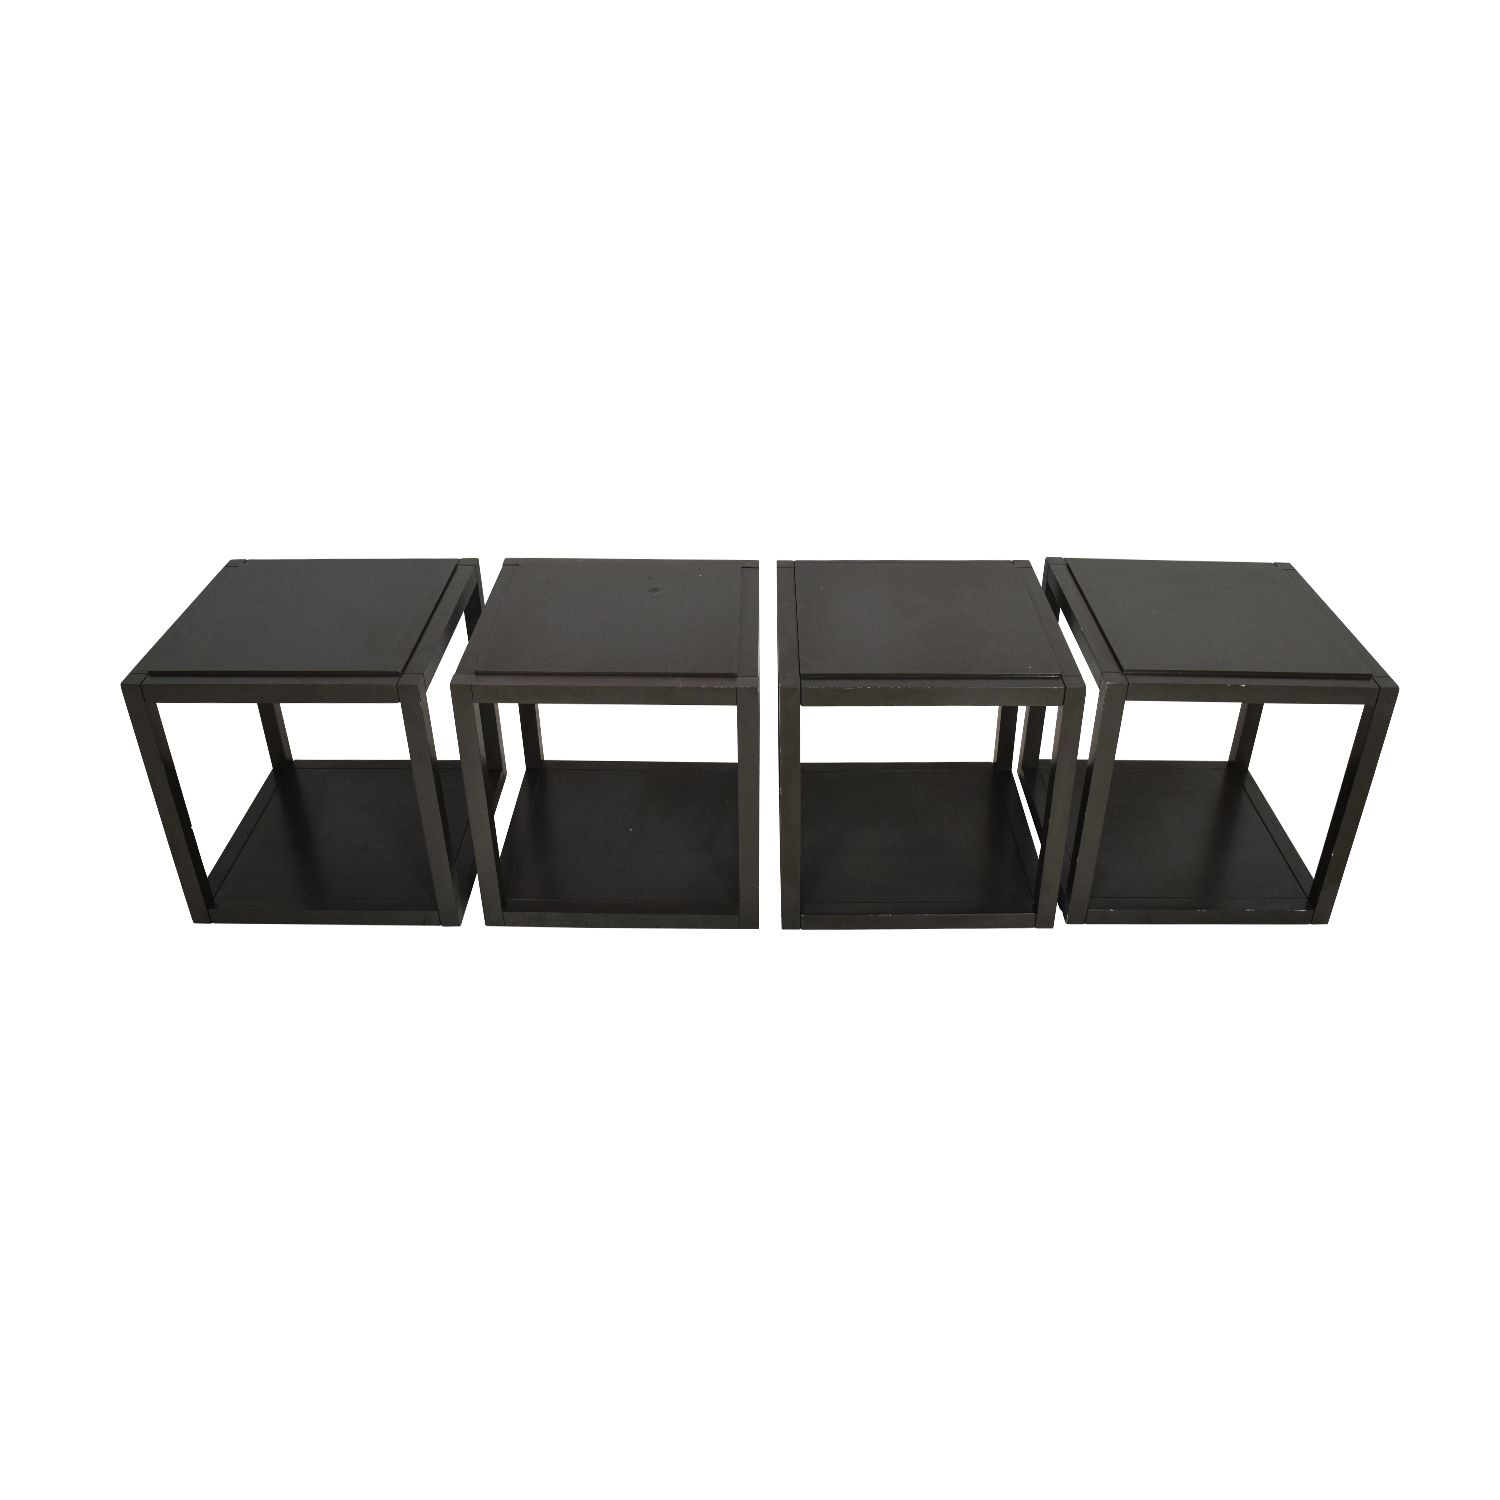 Crate and Barrel Crate and Barrel Multifunctional Cubes nyc